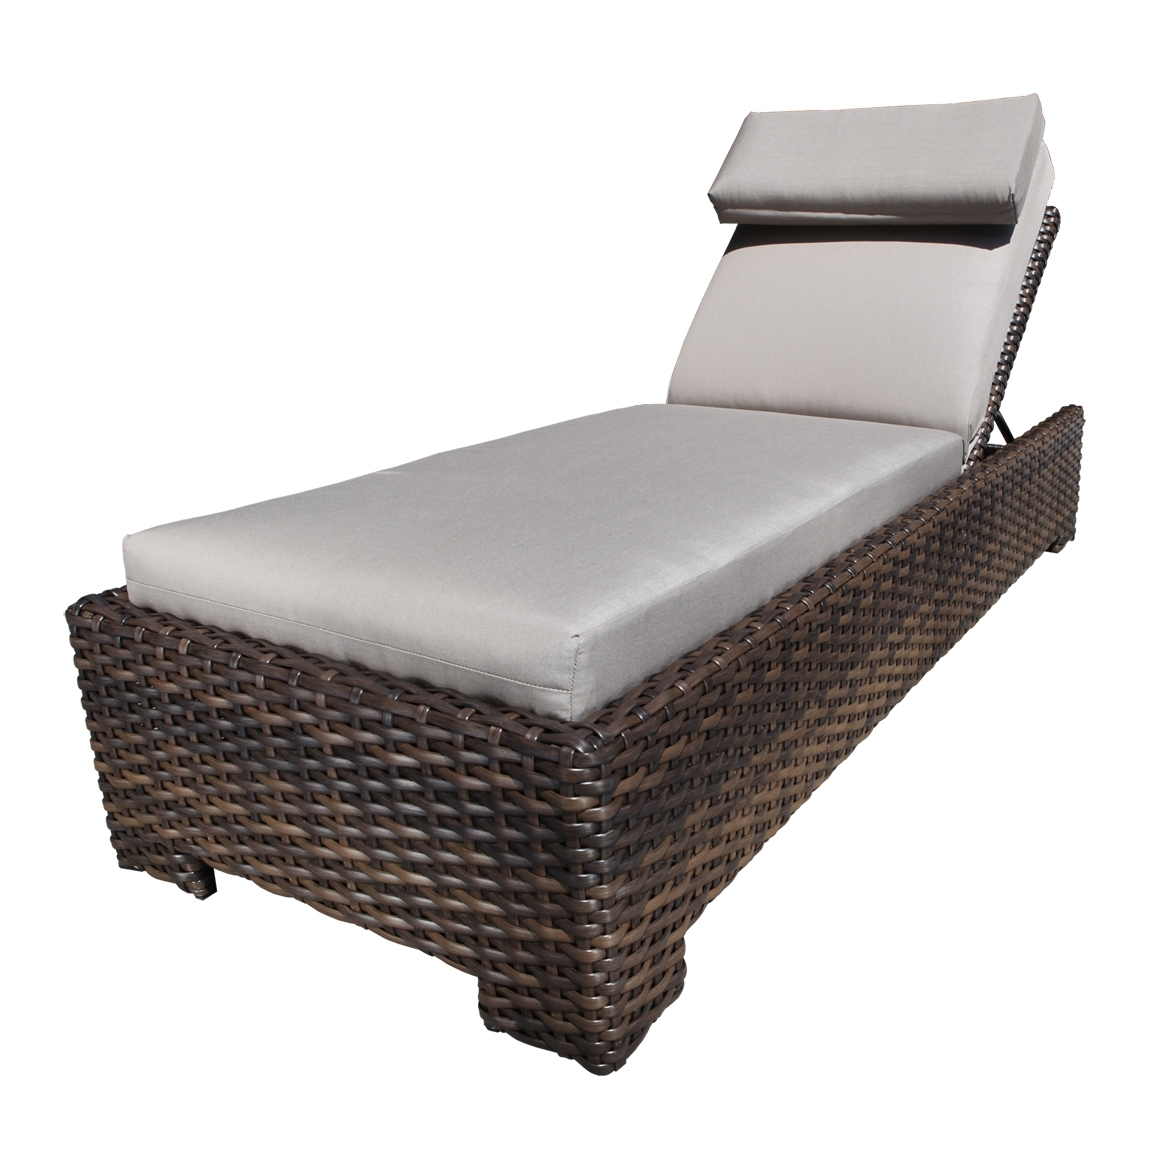 Chaise Lounge Chairs In Canada Regarding Most Recently Released Patio Outdoor Chaise Lounge Chairs : Best Outdoor Chaise Lounge (View 7 of 15)